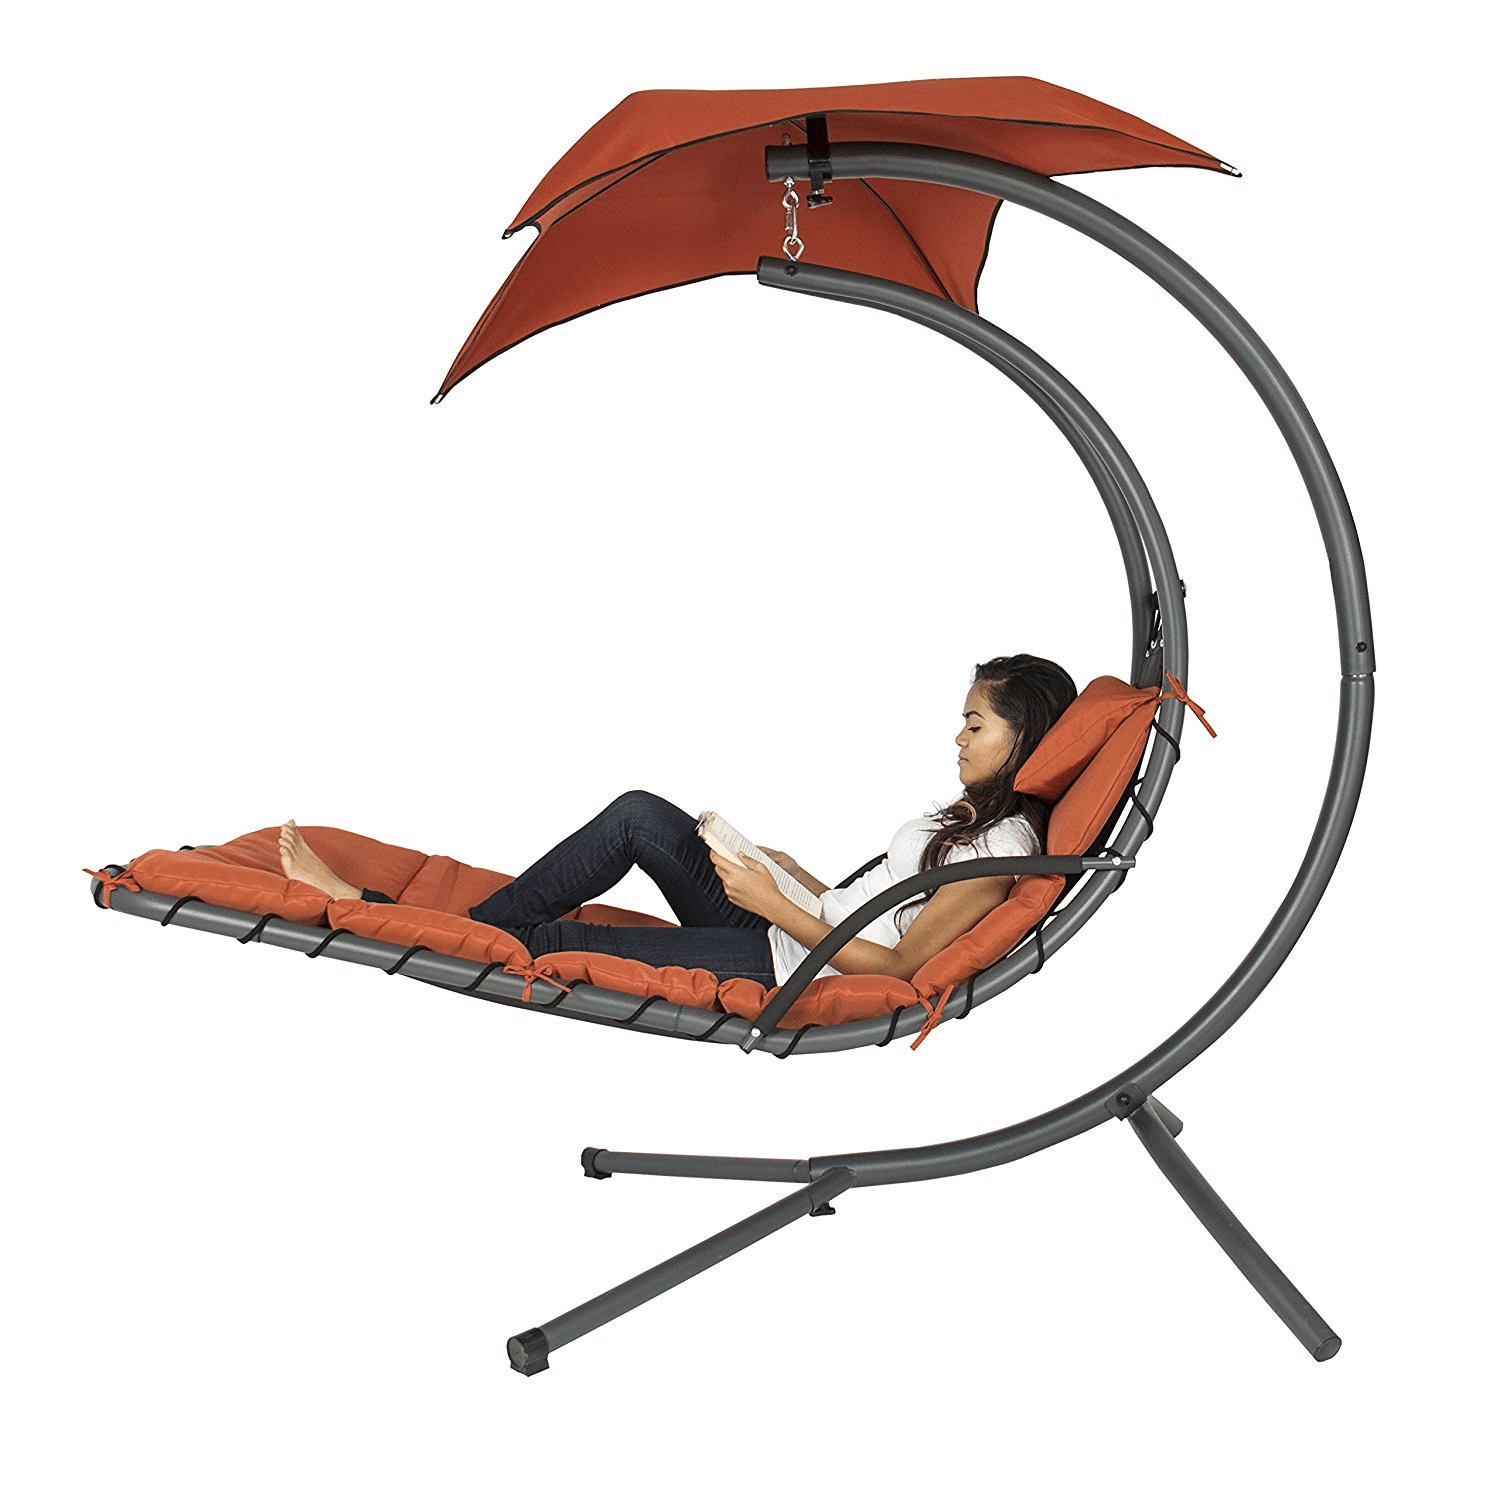 canopy chairs best price large round chair cushions amazon hanging chaise lounger swing simplemost